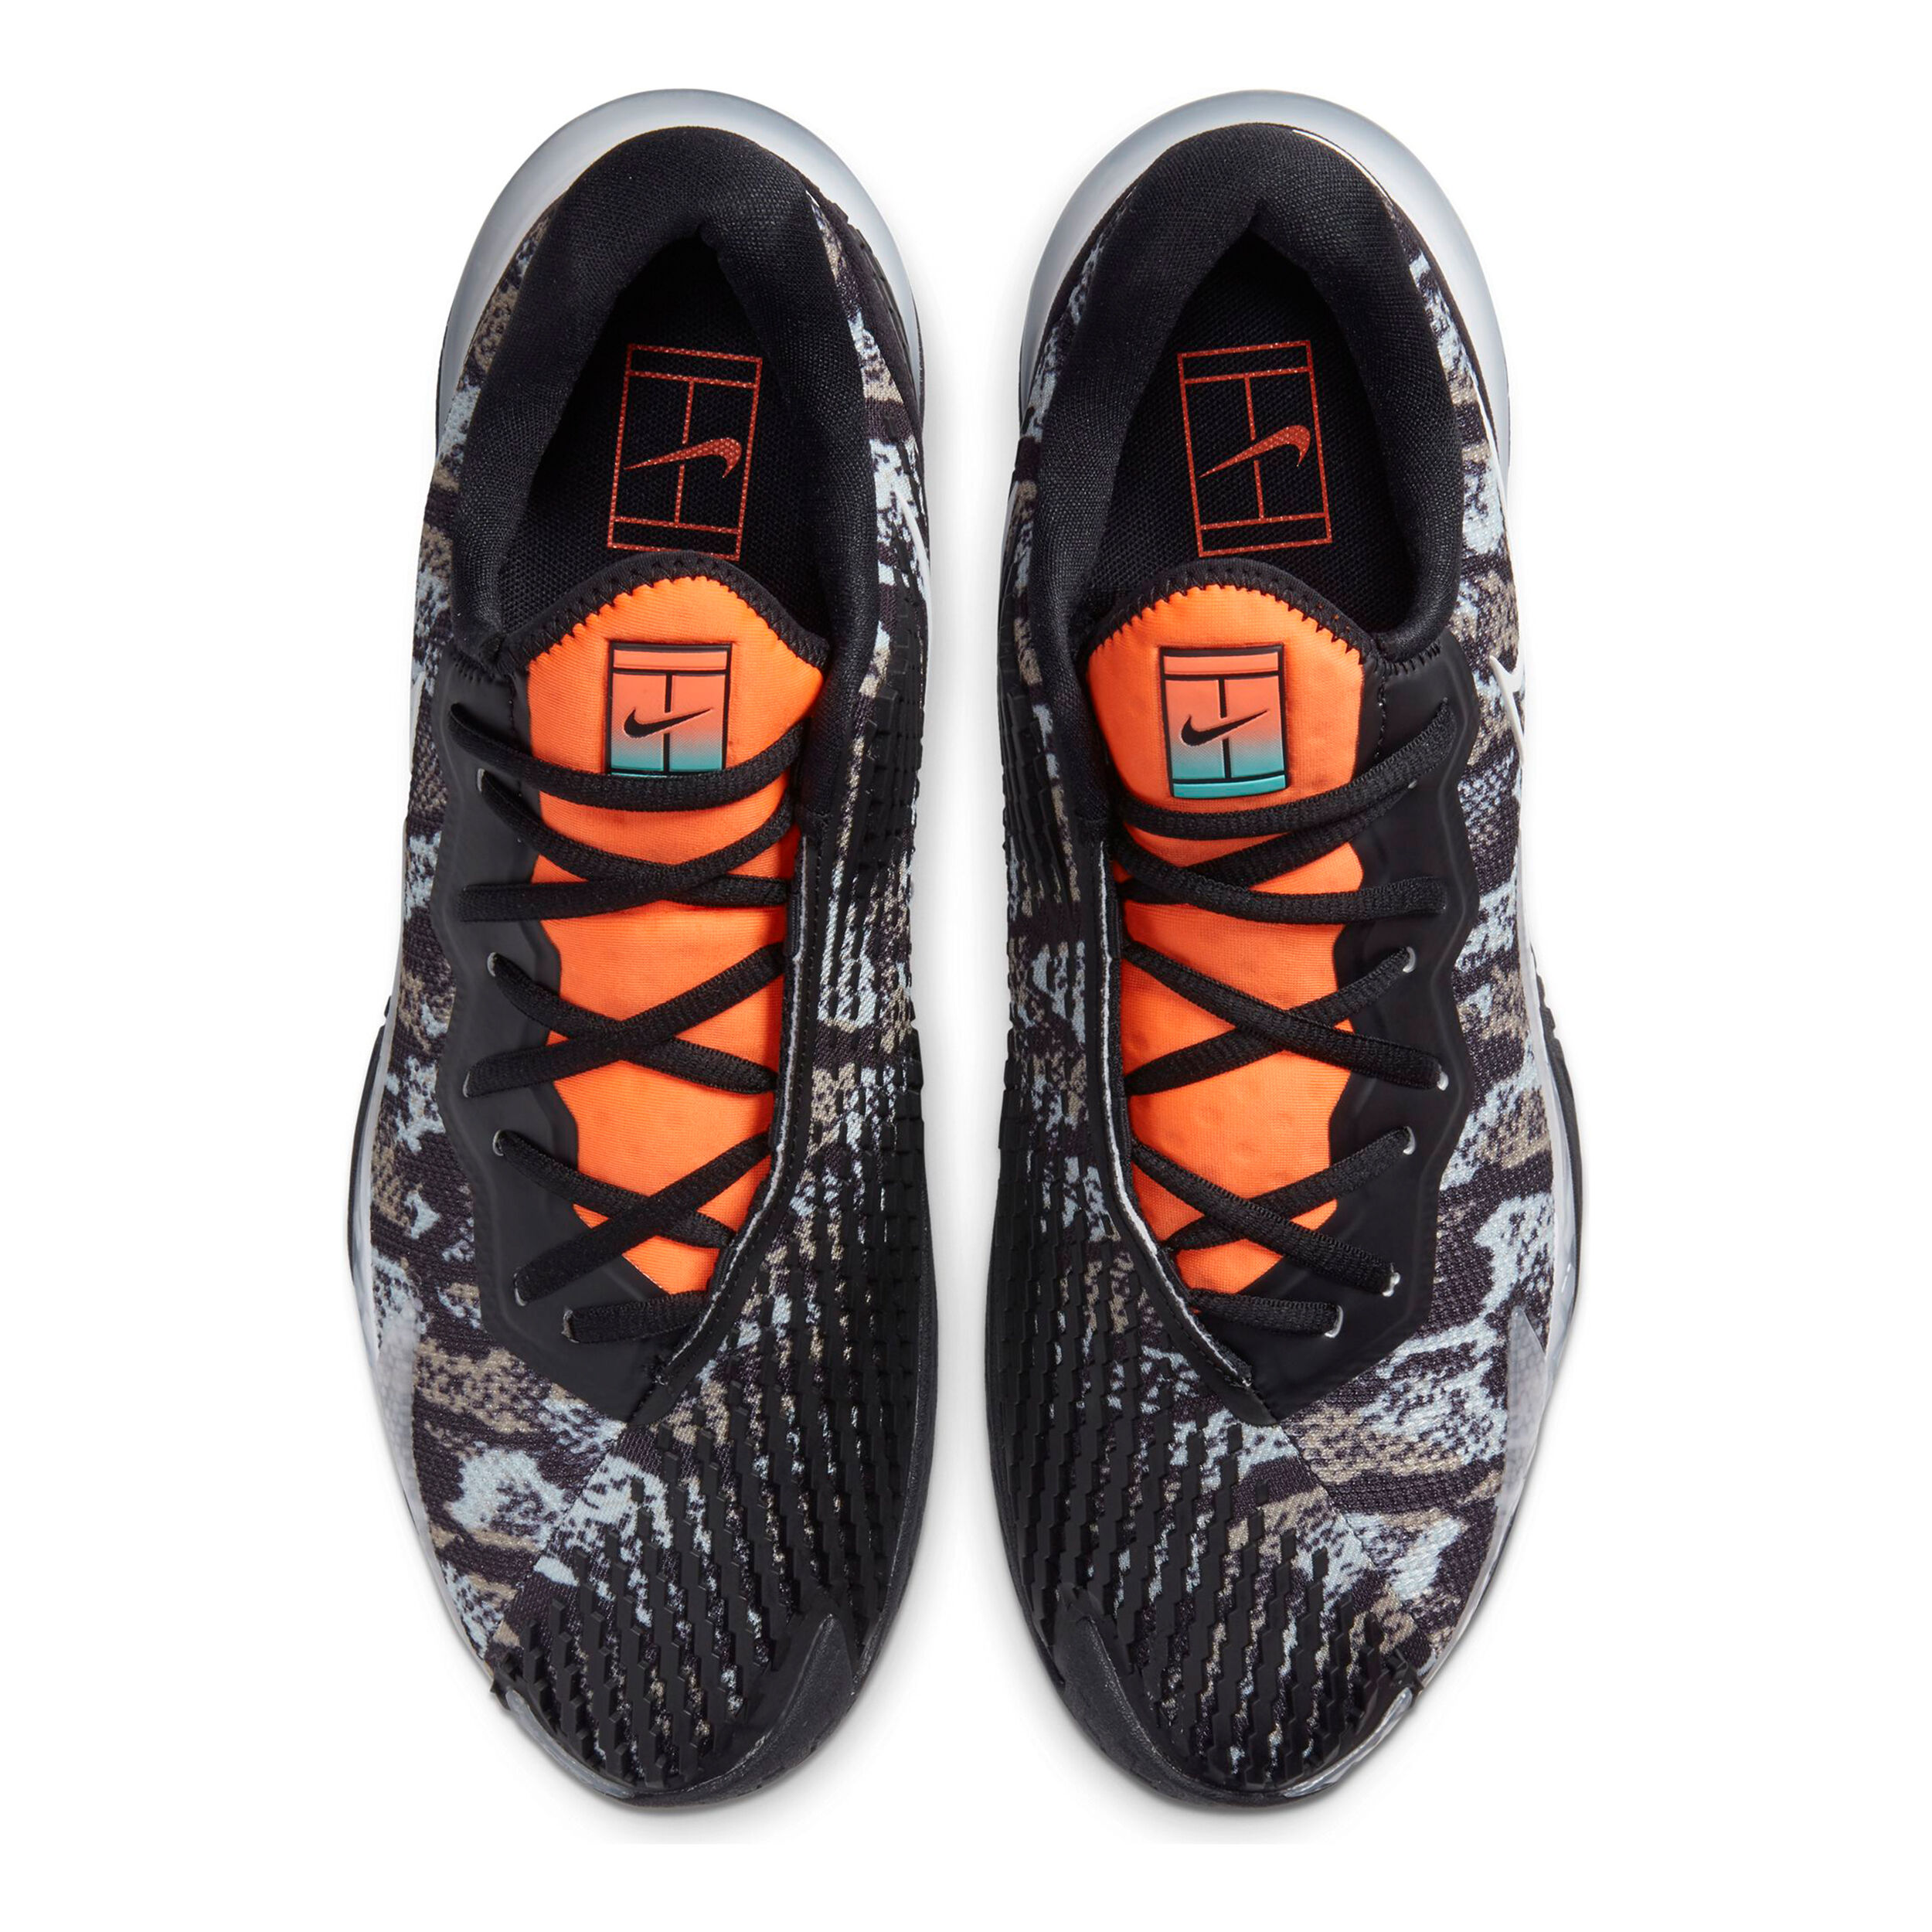 Nike Air Zoom Vapor Cage 4 Chaussures Toutes Surfaces Hommes ...